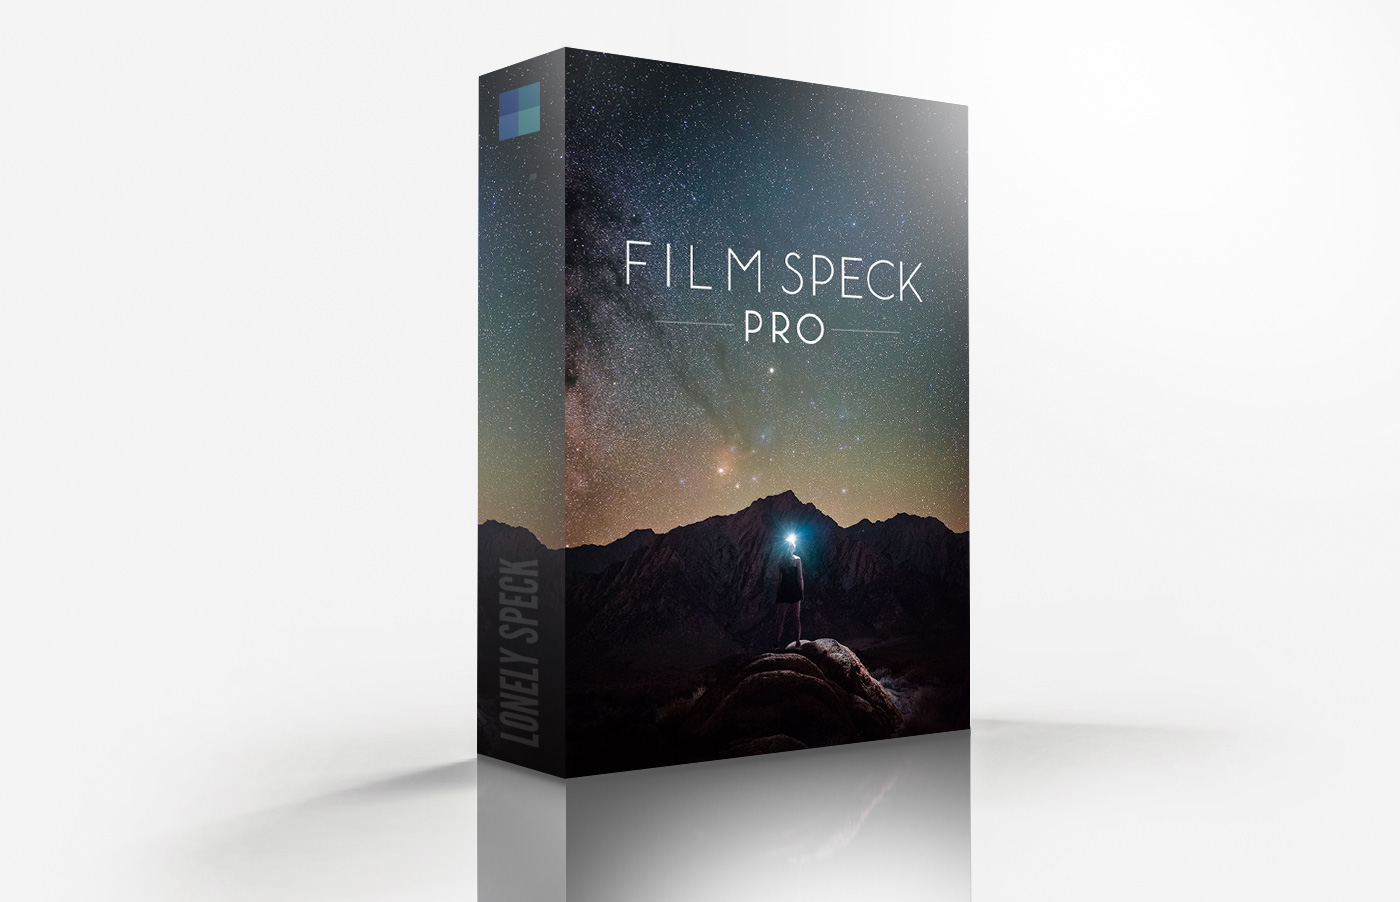 Film Speck Pro: Premium Lightroom Presets by Lonely Speck